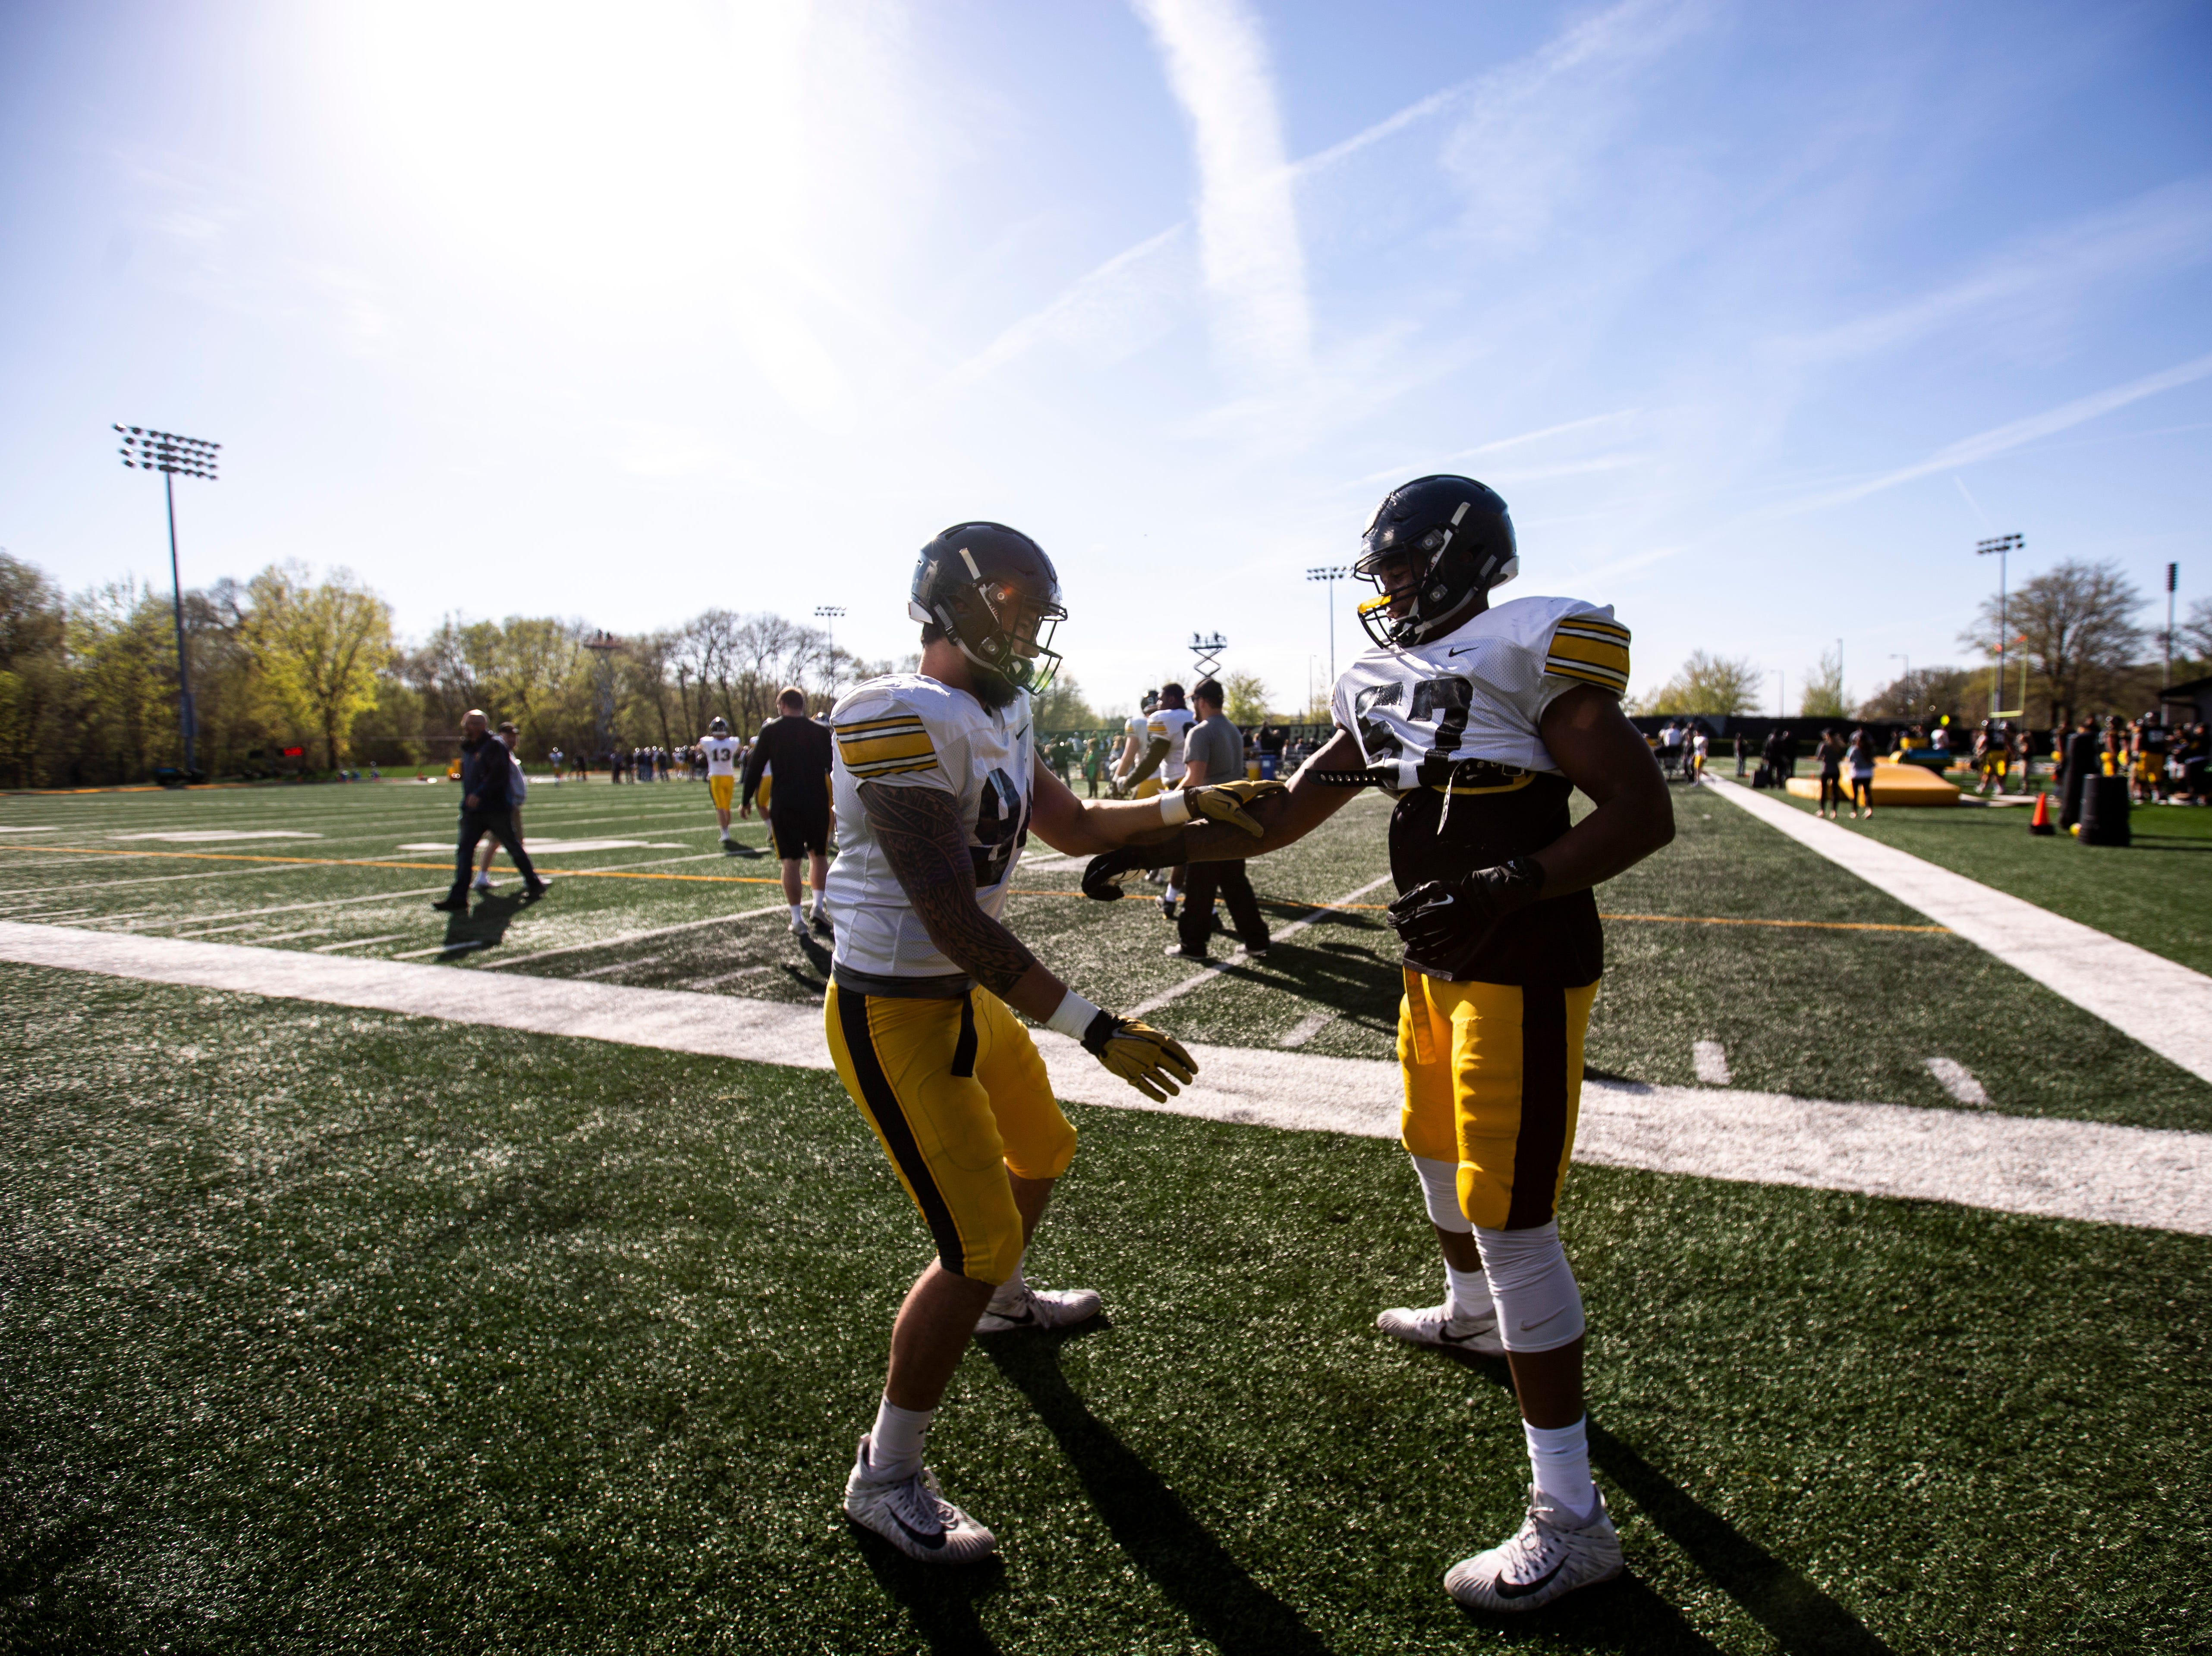 Iowa defensive end A.J. Epenesa (94) and defensive lineman Chauncey Golston (57) joke around during the final spring football practice, Friday, April 26, 2019, at the University of Iowa outdoor practice facility in Iowa City, Iowa.